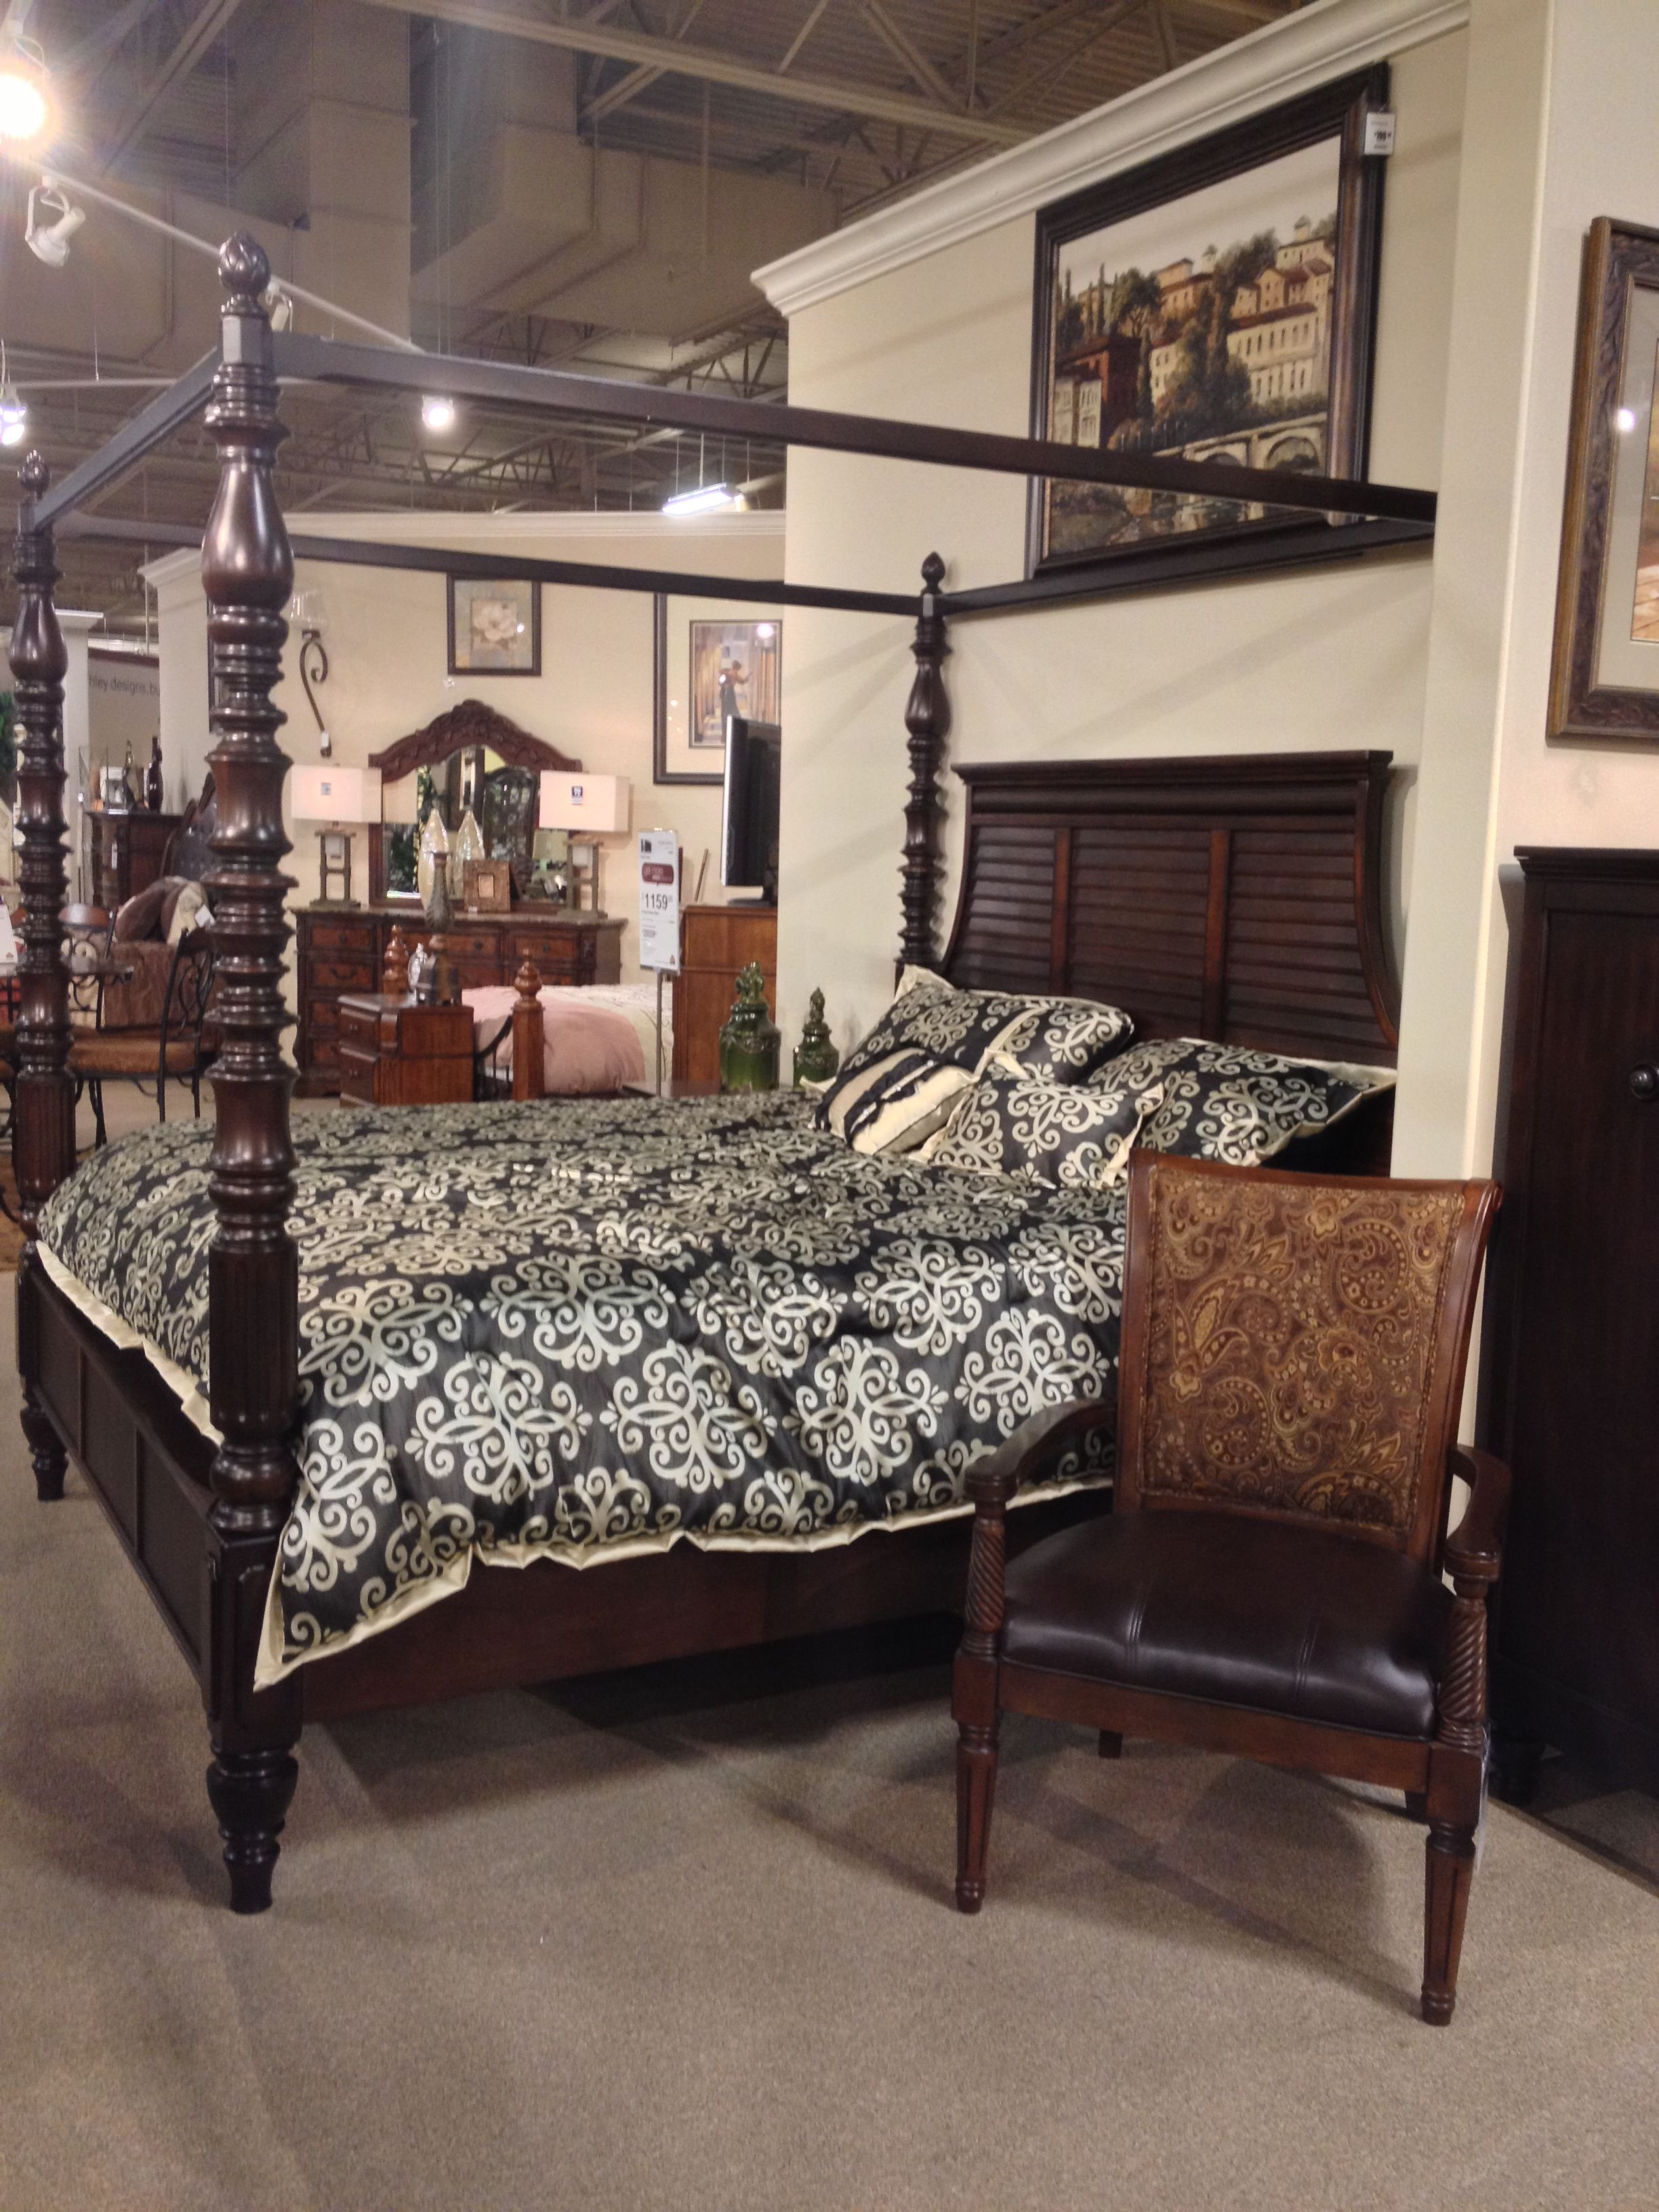 ... Key Town King Queen Poster Bed Ashley Furniture In Tricities. Download